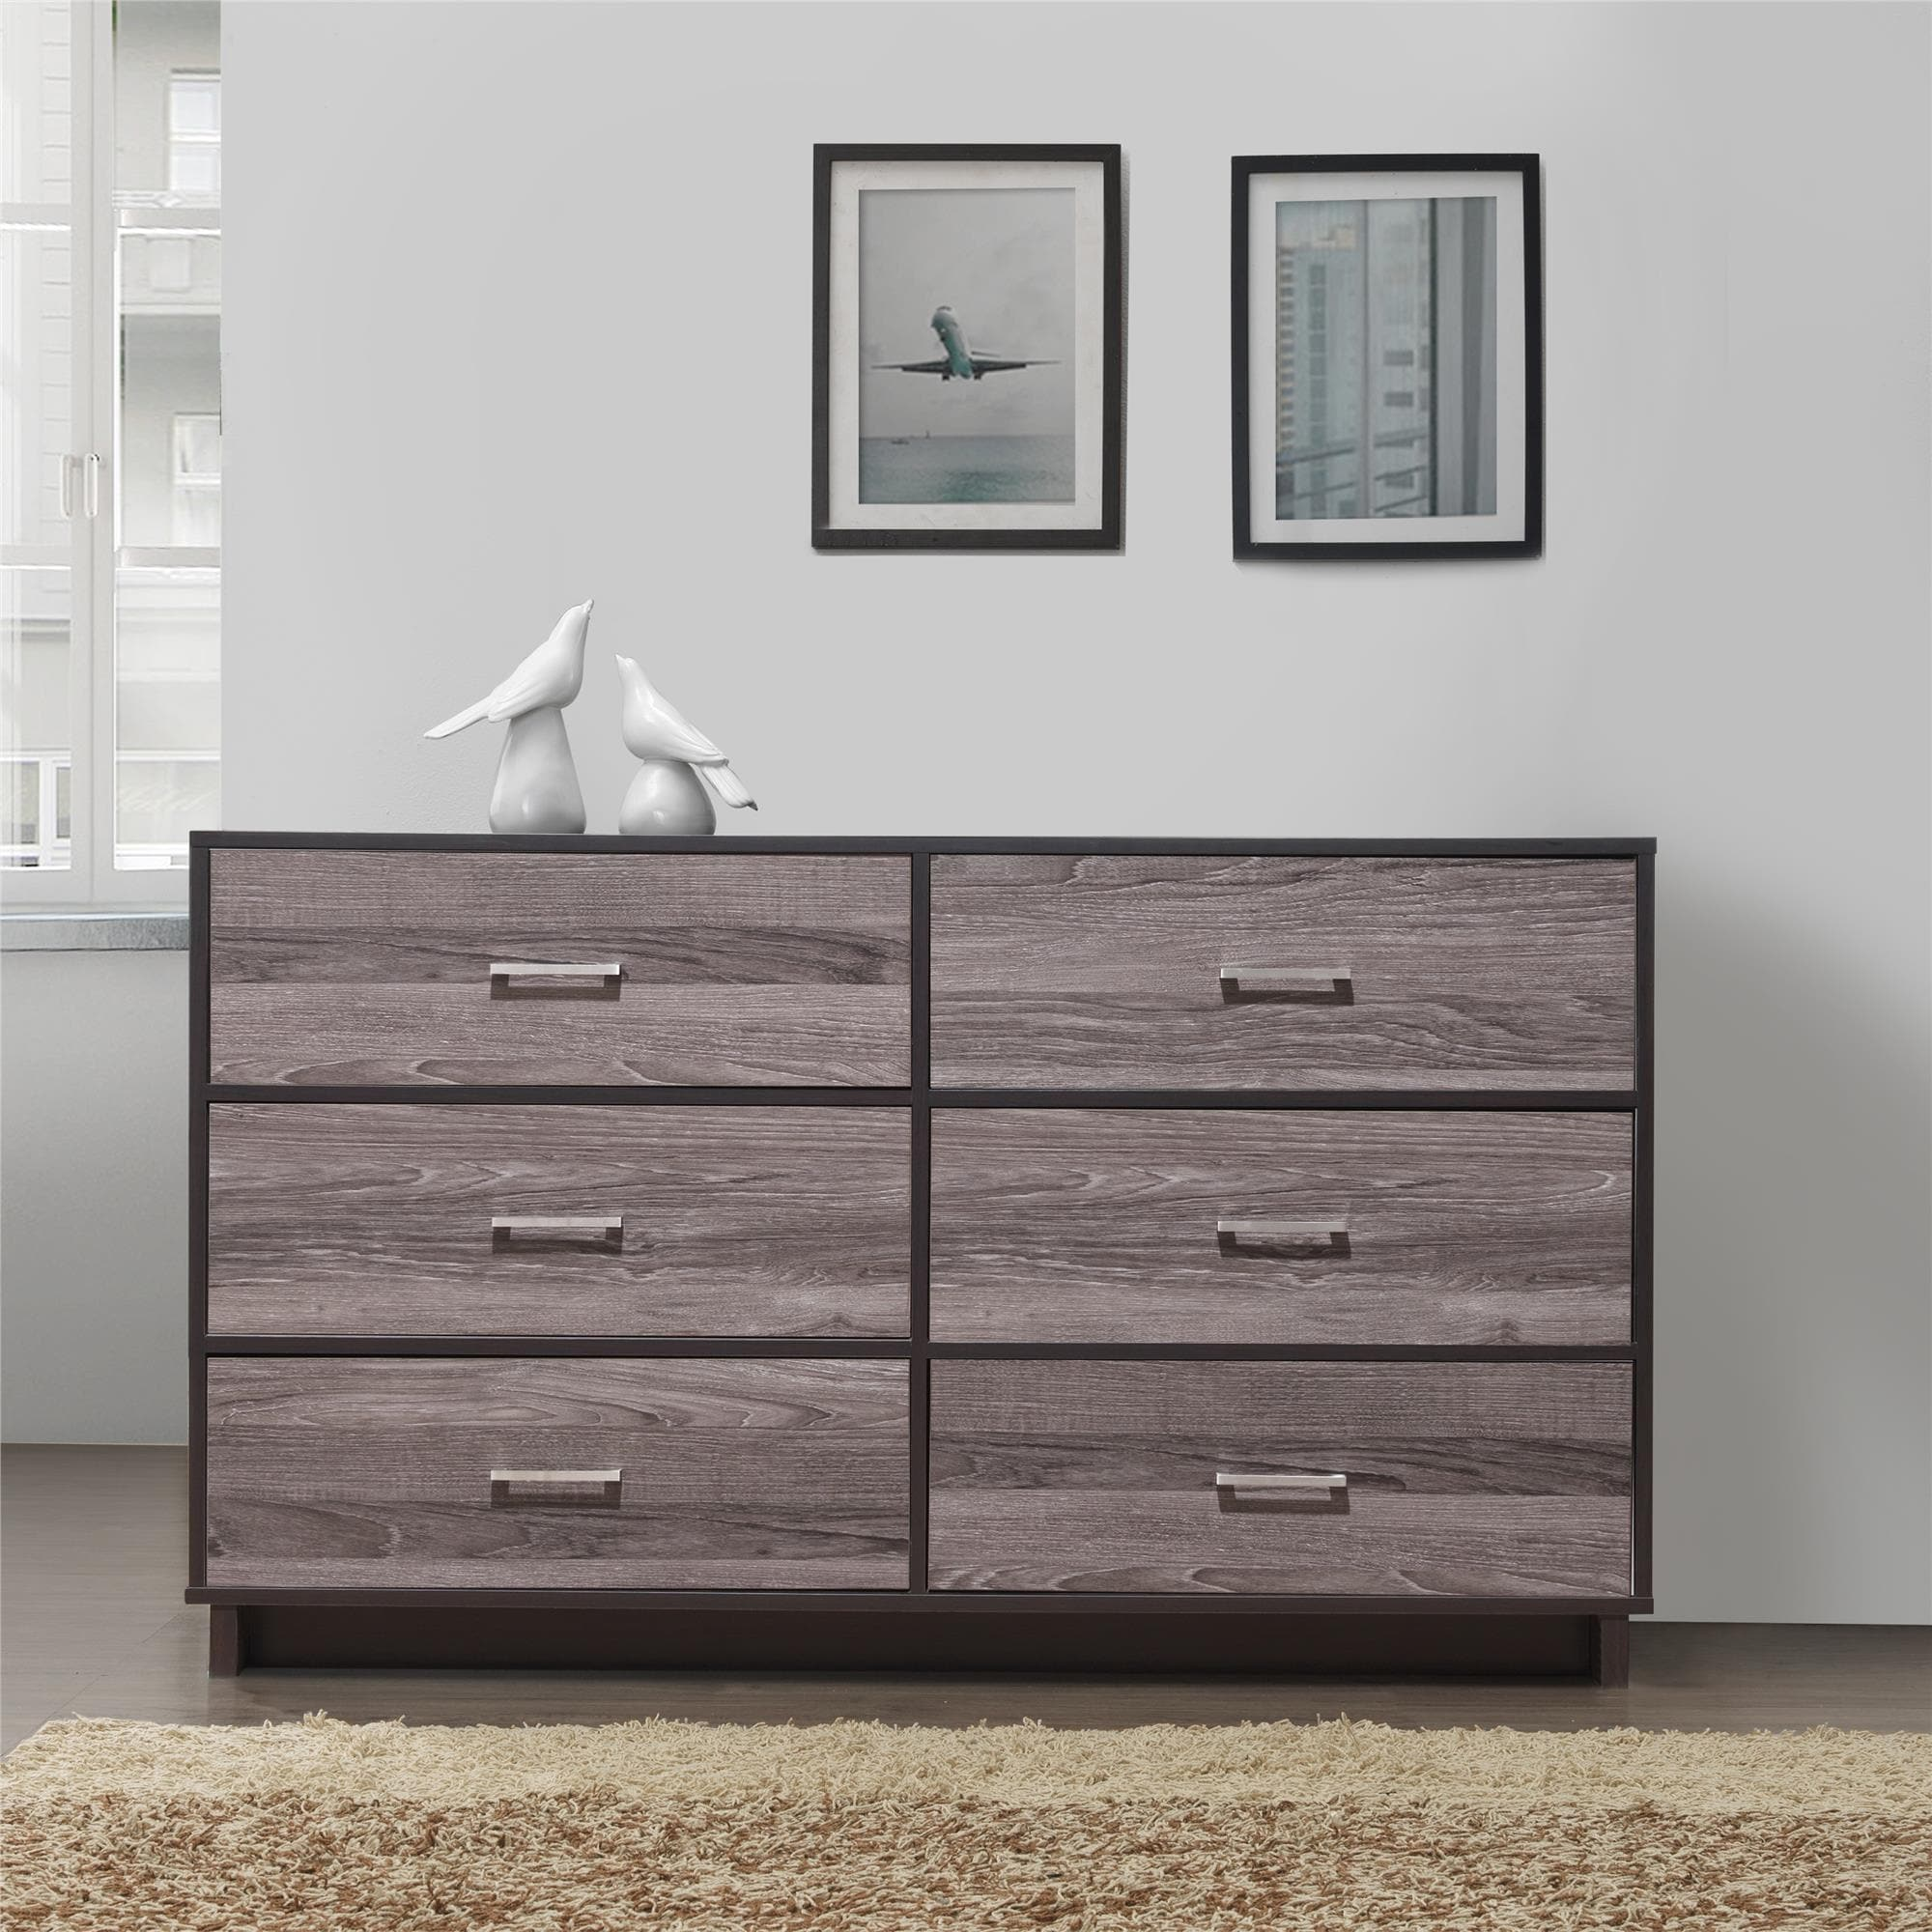 Clay Alder Home Hangzhou Modern 6-drawer Dresser